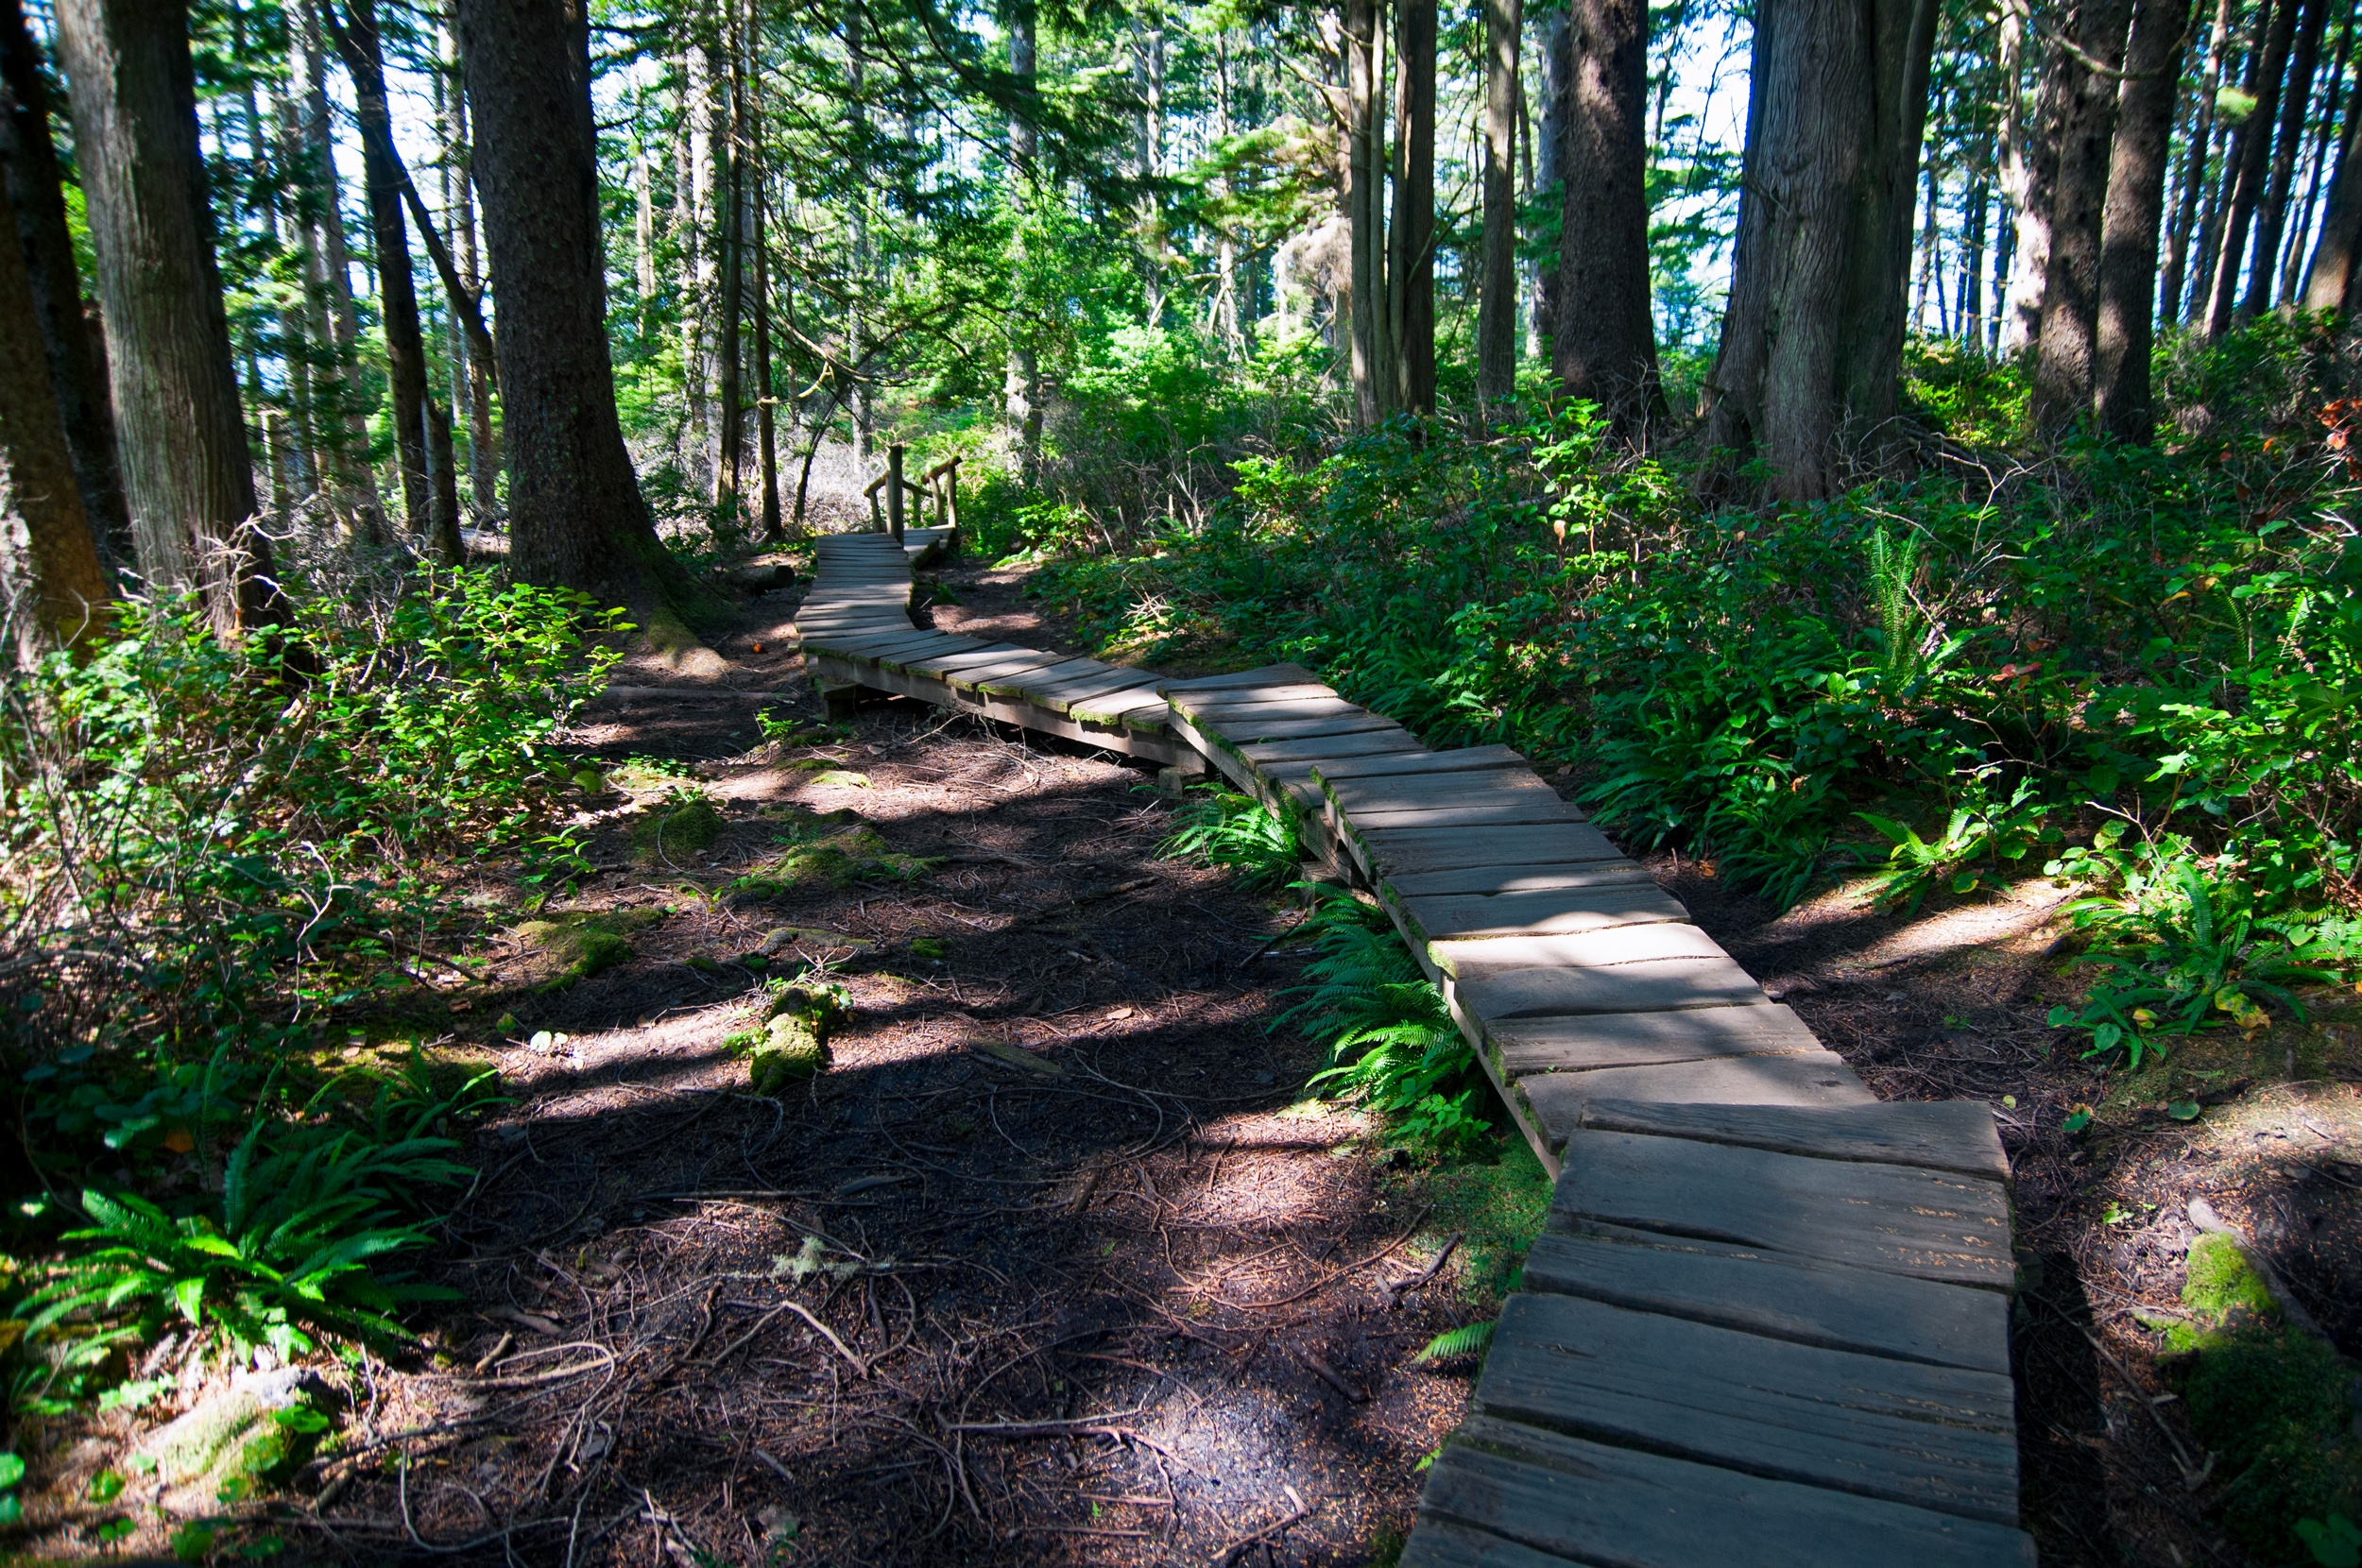 Boardwalk through the forest in Olympic National Park: Places to visit in Washington